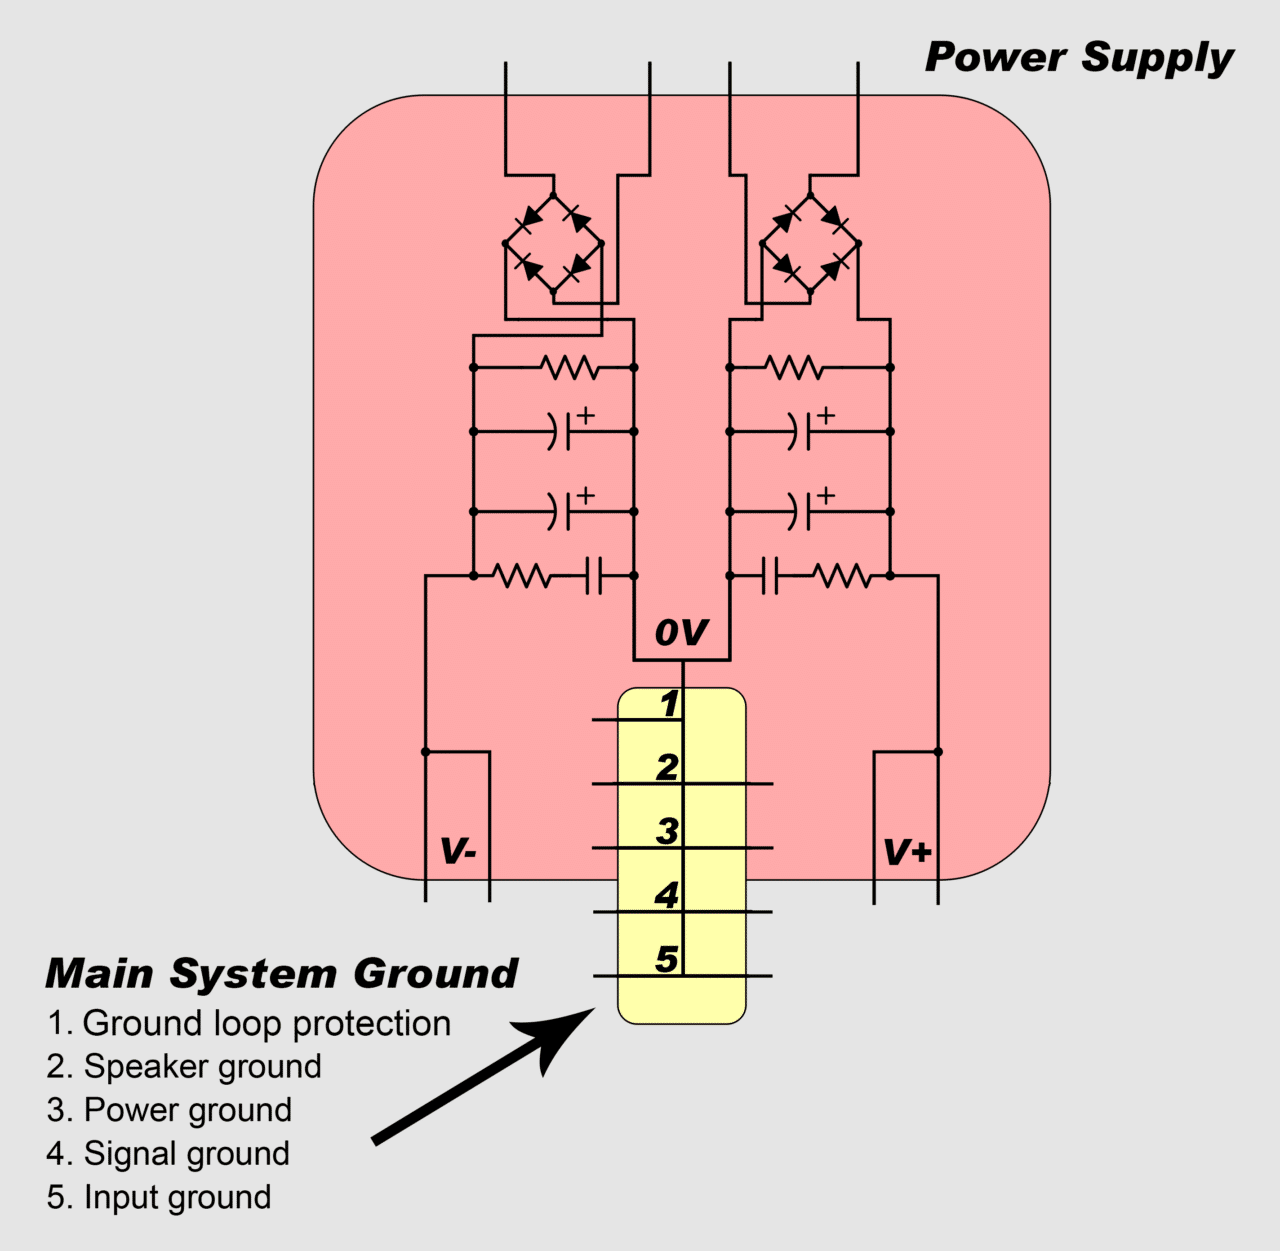 How To Design And Build An Amplifier With The Tda2050 Circuit Basics 20w Car Audio Main System Ground Should Be Located As Close Possible Reservoir Capacitors On Power Supply